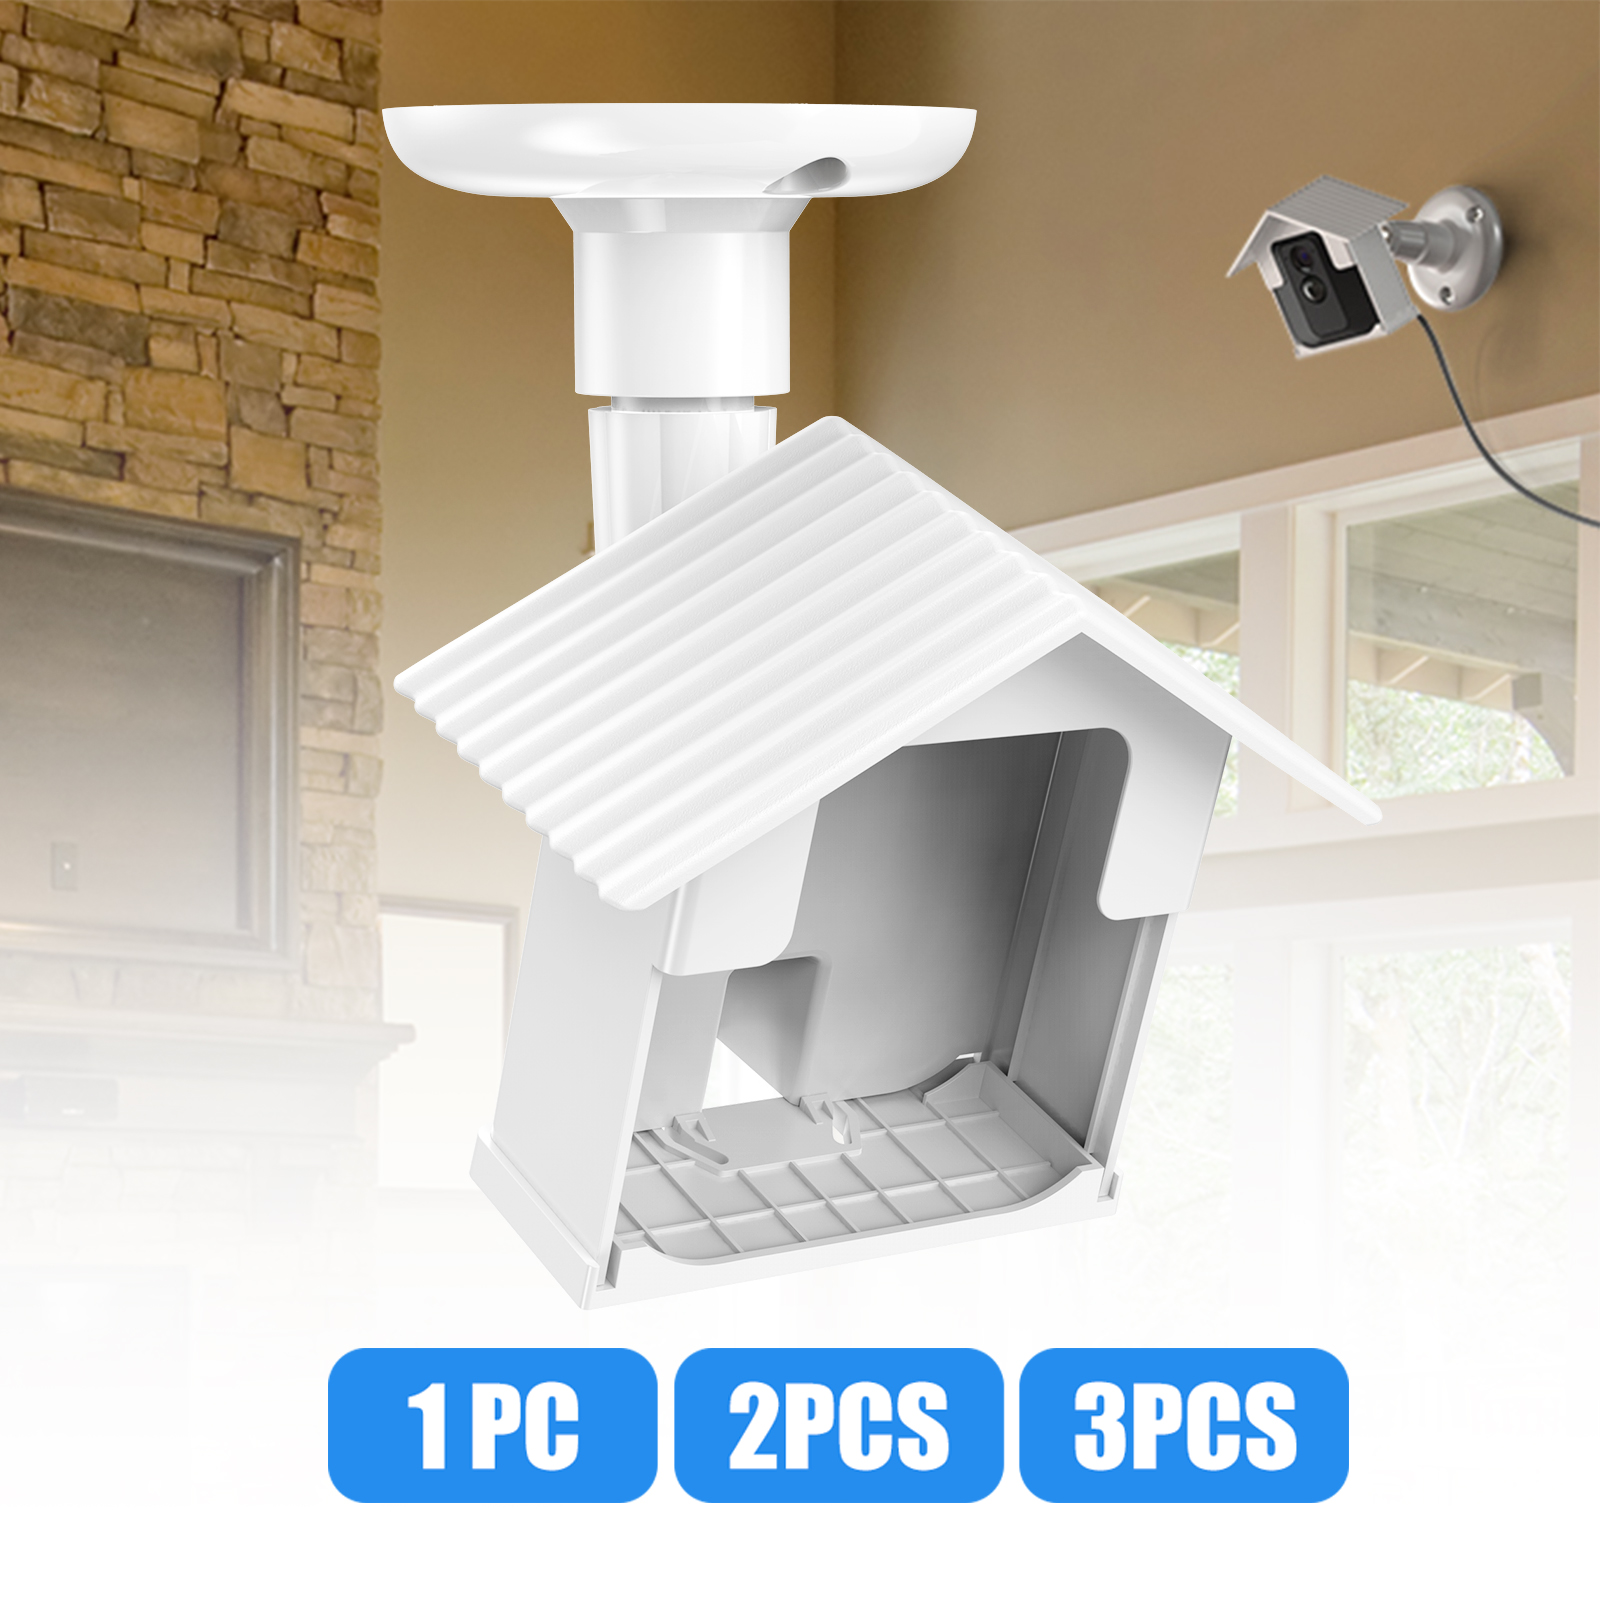 Wall-Mount-Ceiling-Bracket-Outdoor-Indoor-Cover-Case-for-Blink-XT-Outdoor-Camera